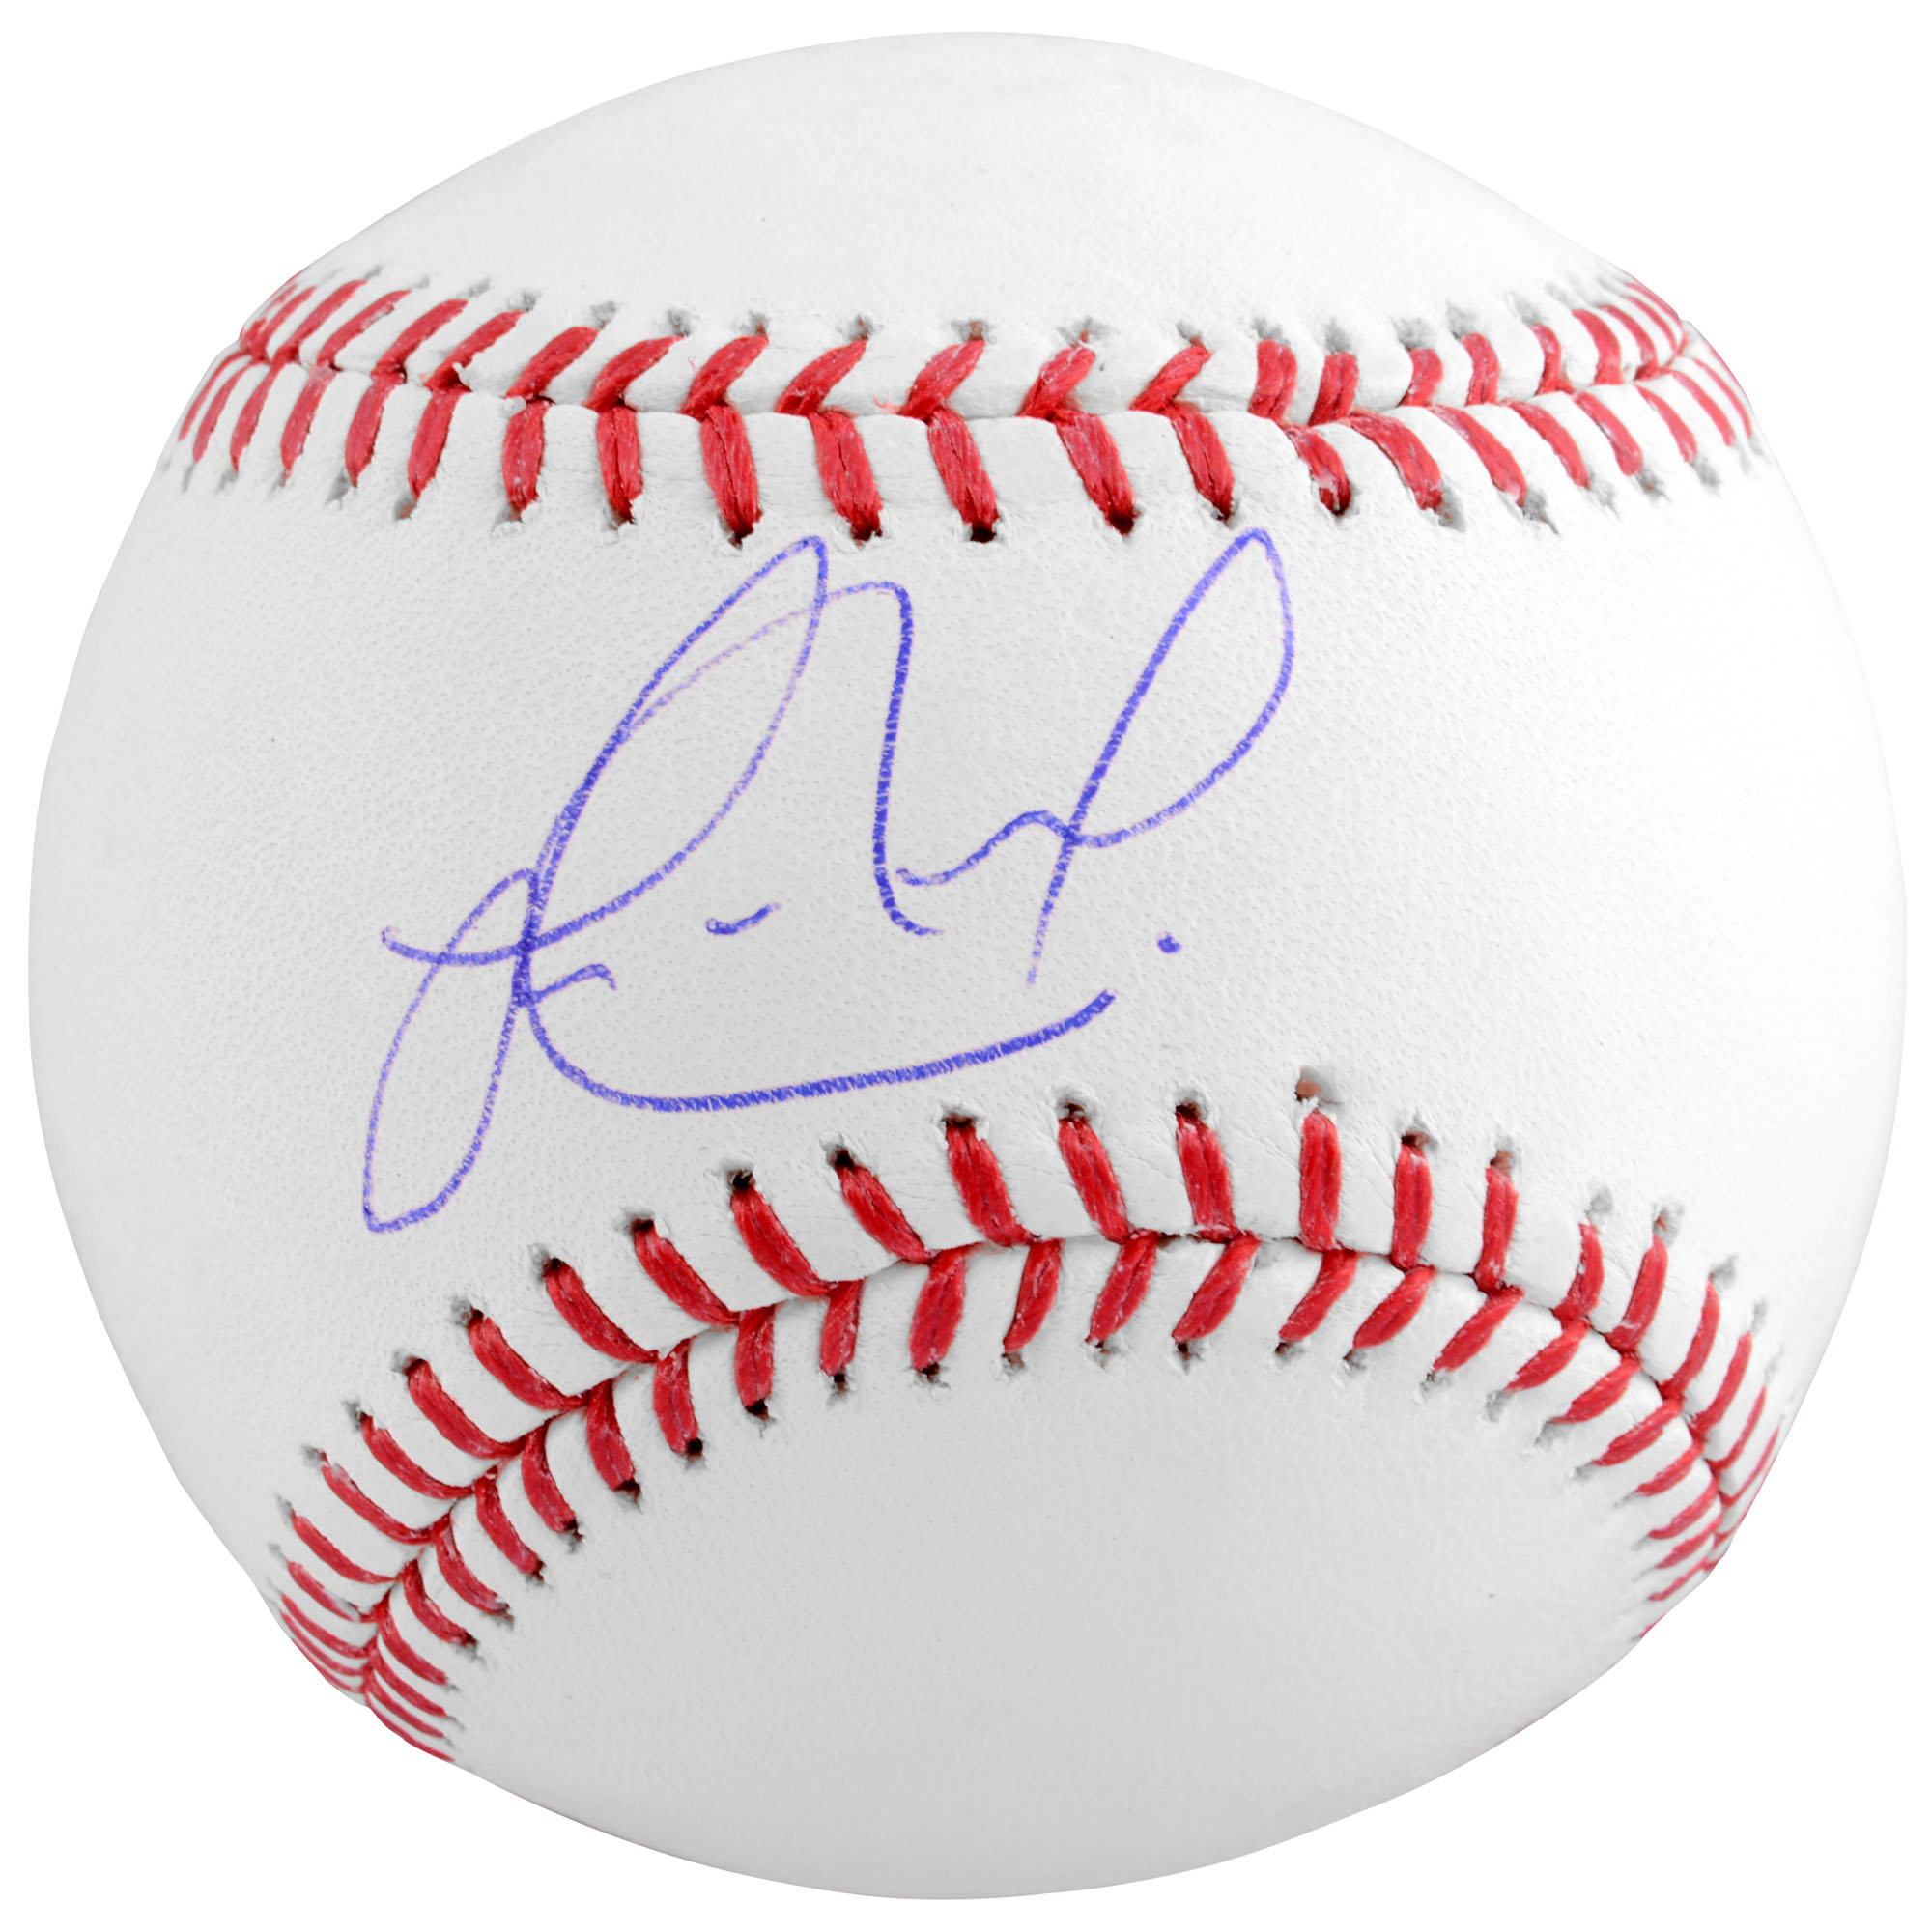 Jorge Alfaro Philadelphia Phillies Fanatics Authentic Autographed Baseball - No Size